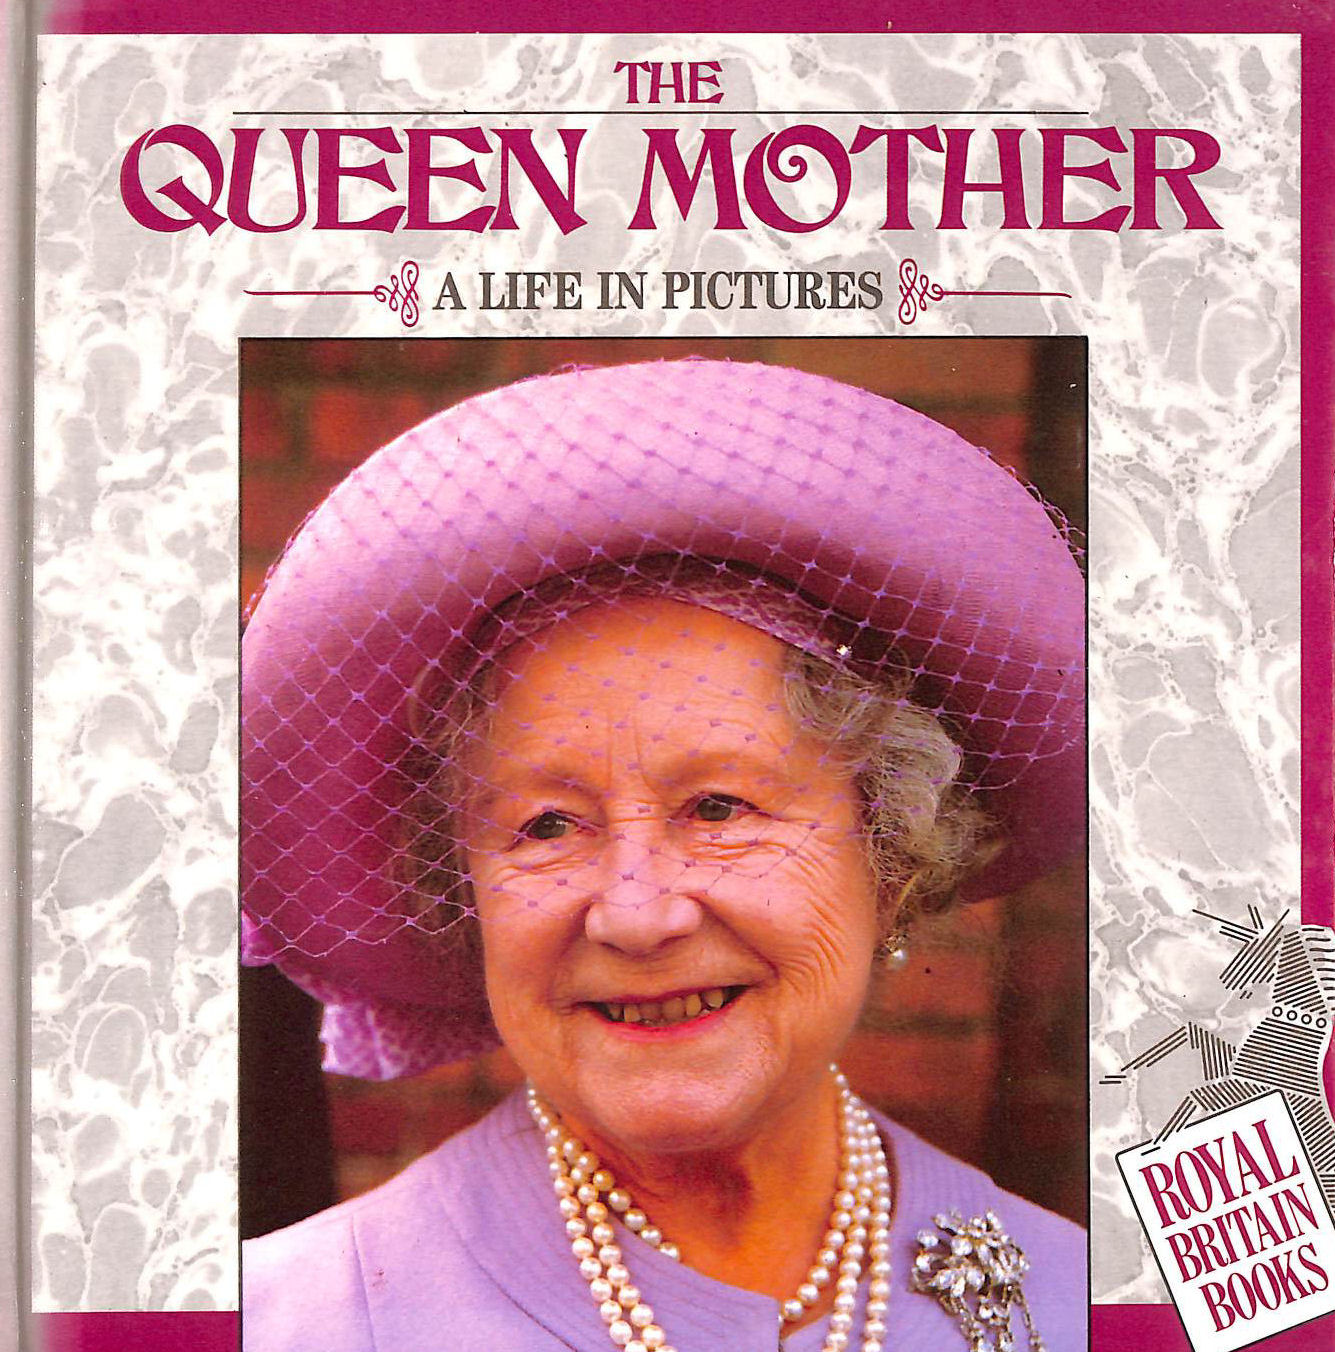 Image for Queen Mother: A Life in Pictures (Royal Britain books)